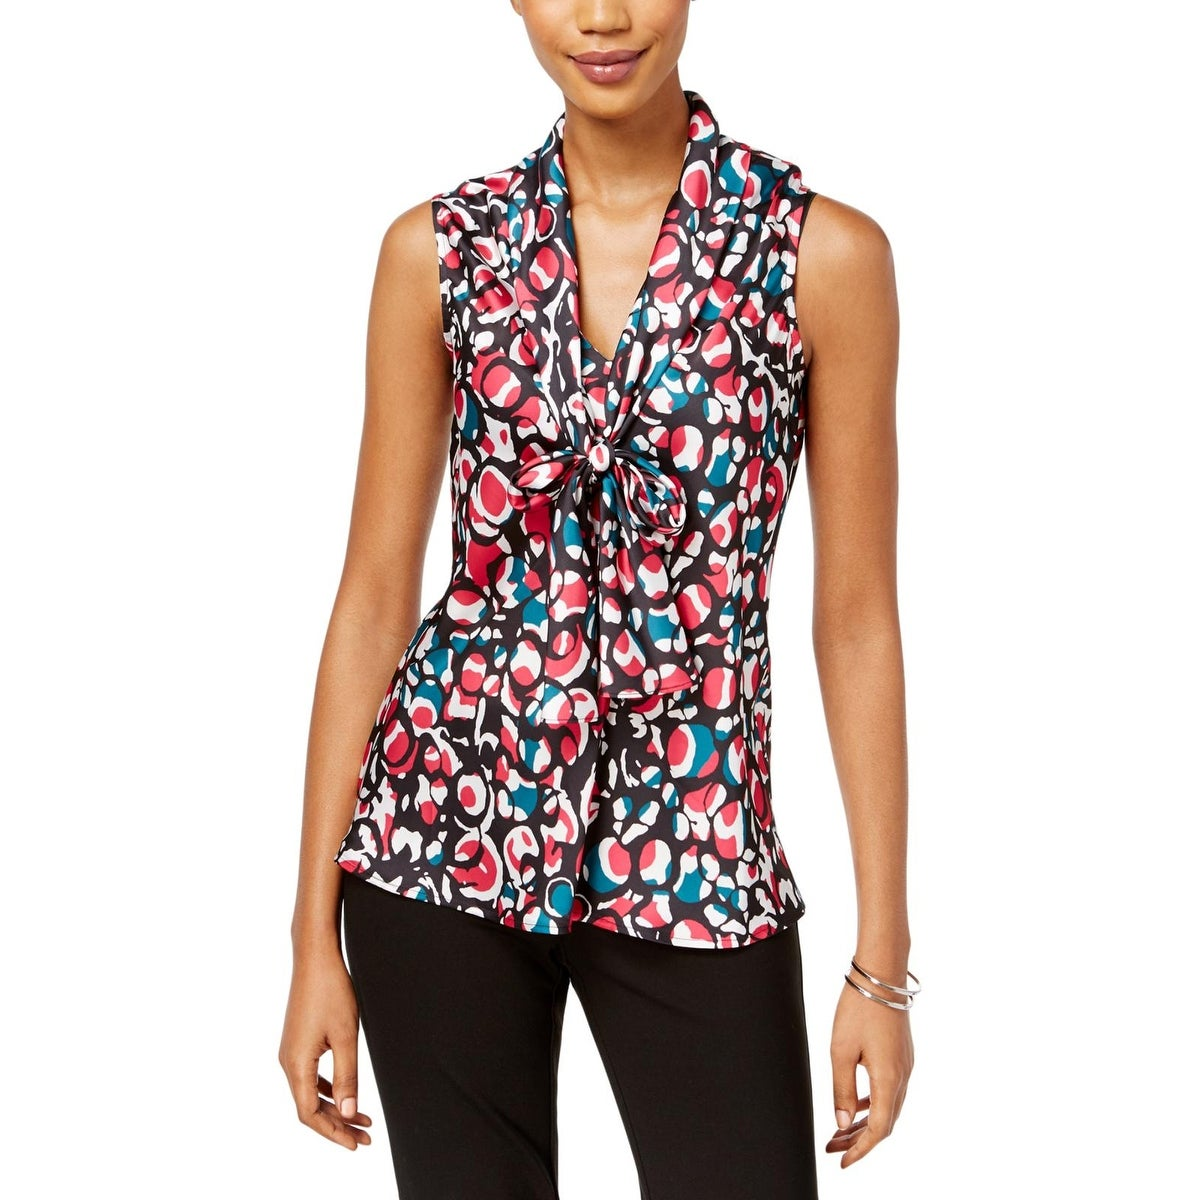 59a6b2ed601b Nine West Tops | Find Great Women's Clothing Deals Shopping at Overstock